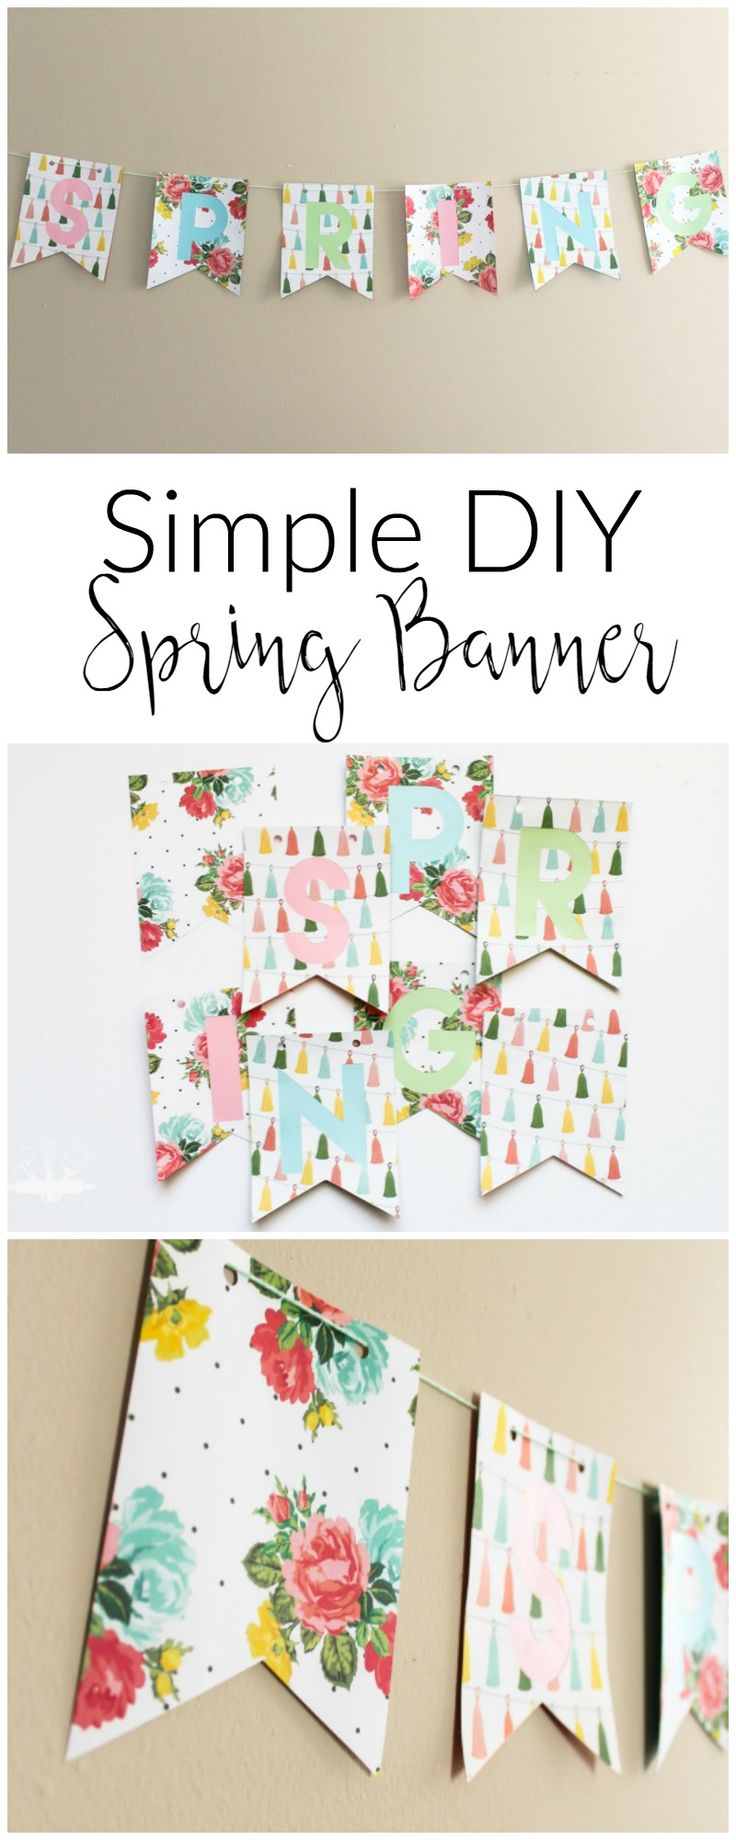 Simple DIY Spring Banner made from pretty floral paper and baker's twine